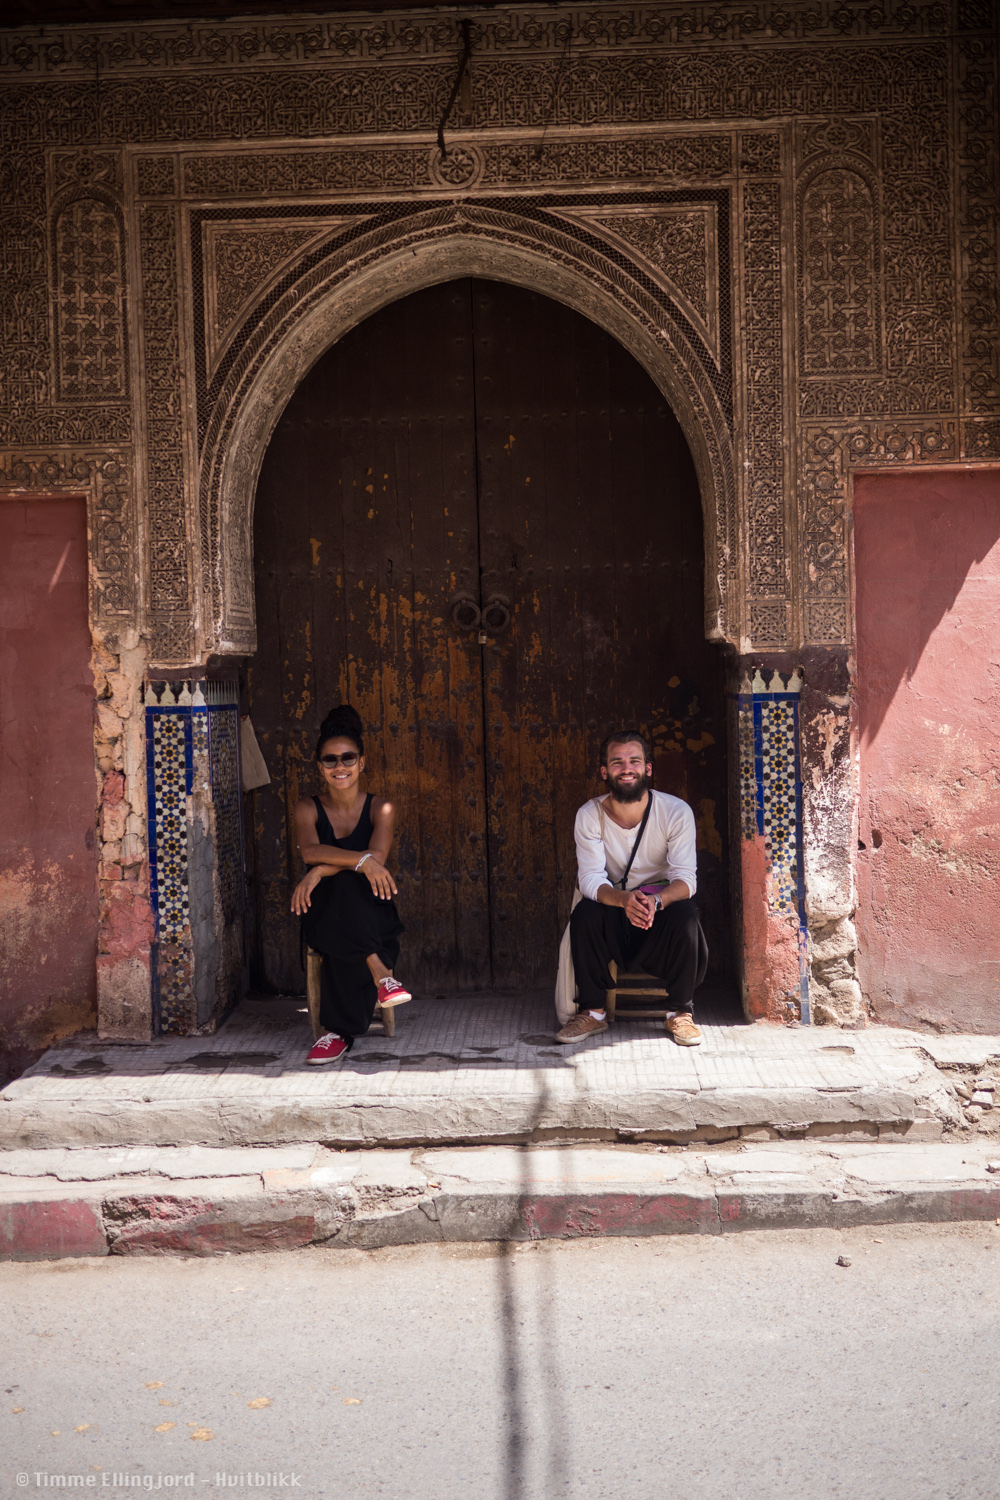 Me and my lovely travel-companion Adriana in Marrakech